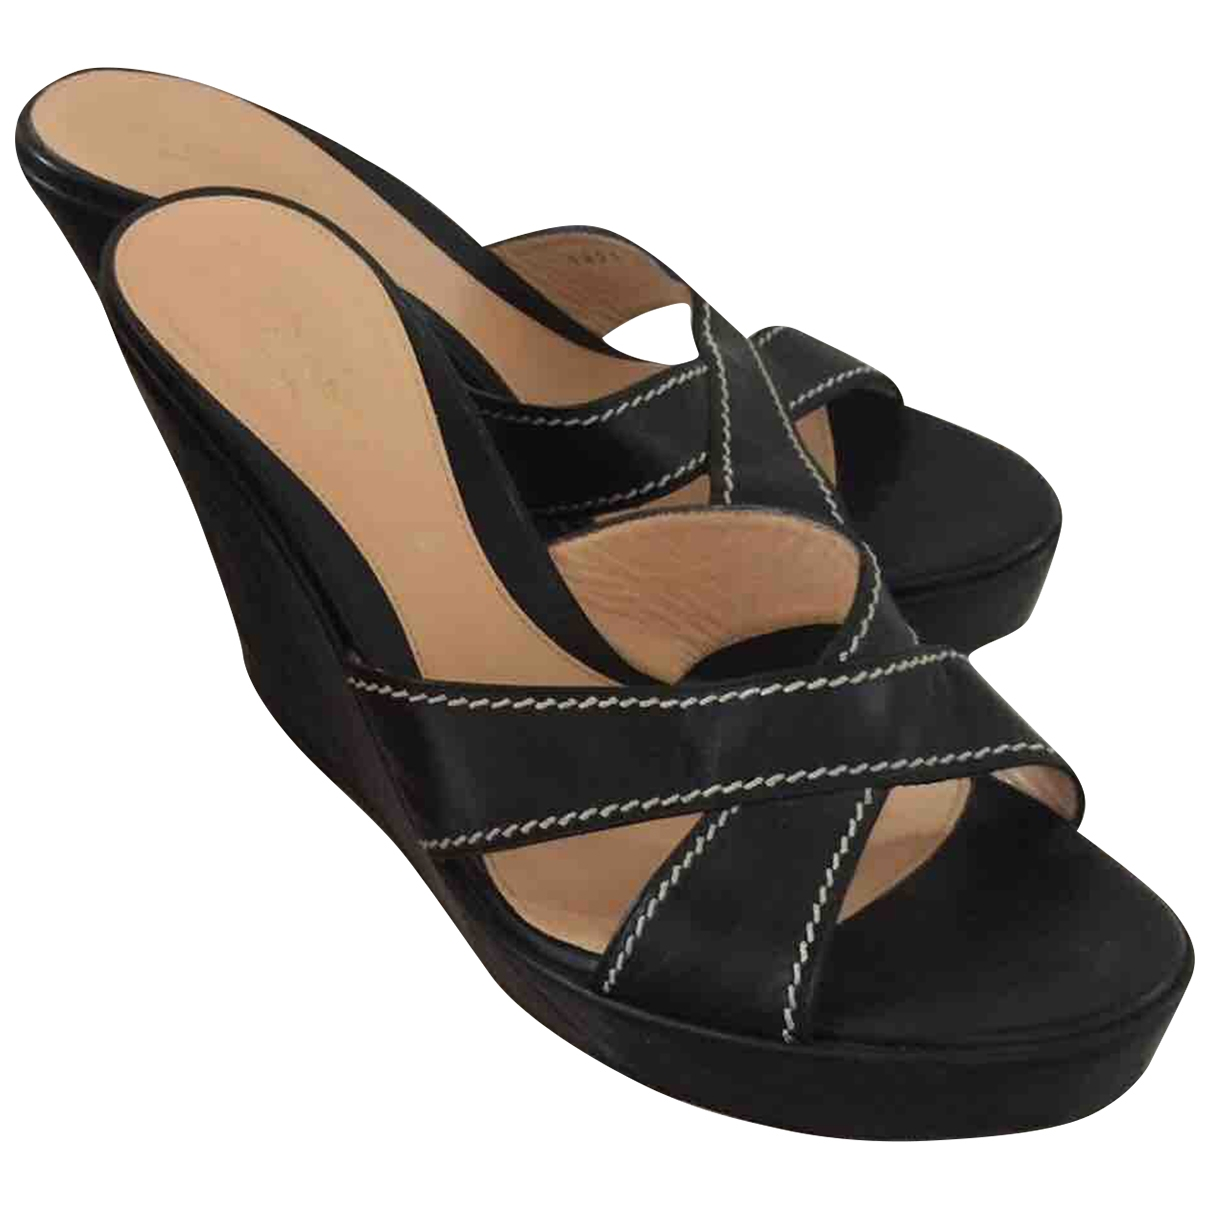 Sergio Rossi \N Black Leather Sandals for Women 40 IT